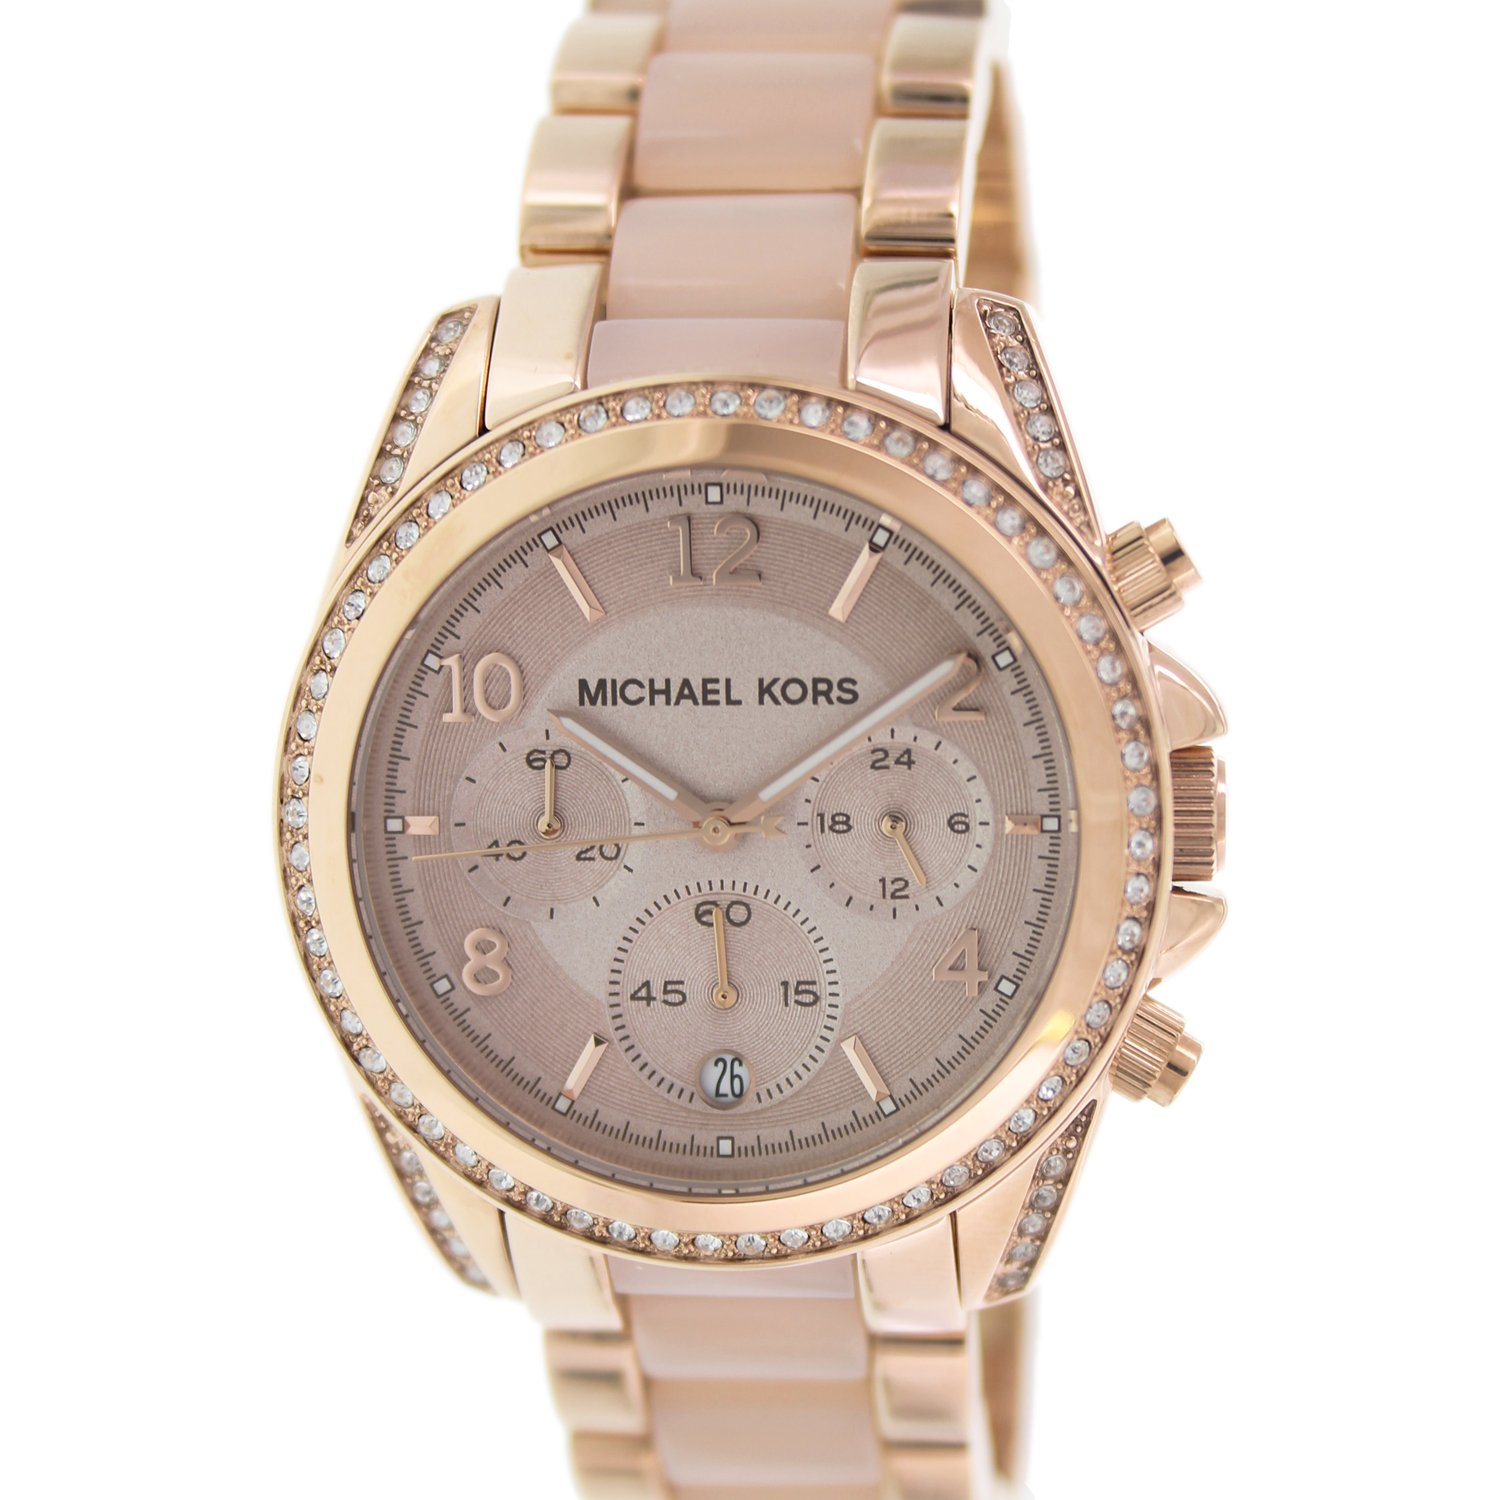 Michael Kors Women's Blair MK5943 Rose-Gold Stainless-Steel Plated Japanese Quartz Fashion Watch